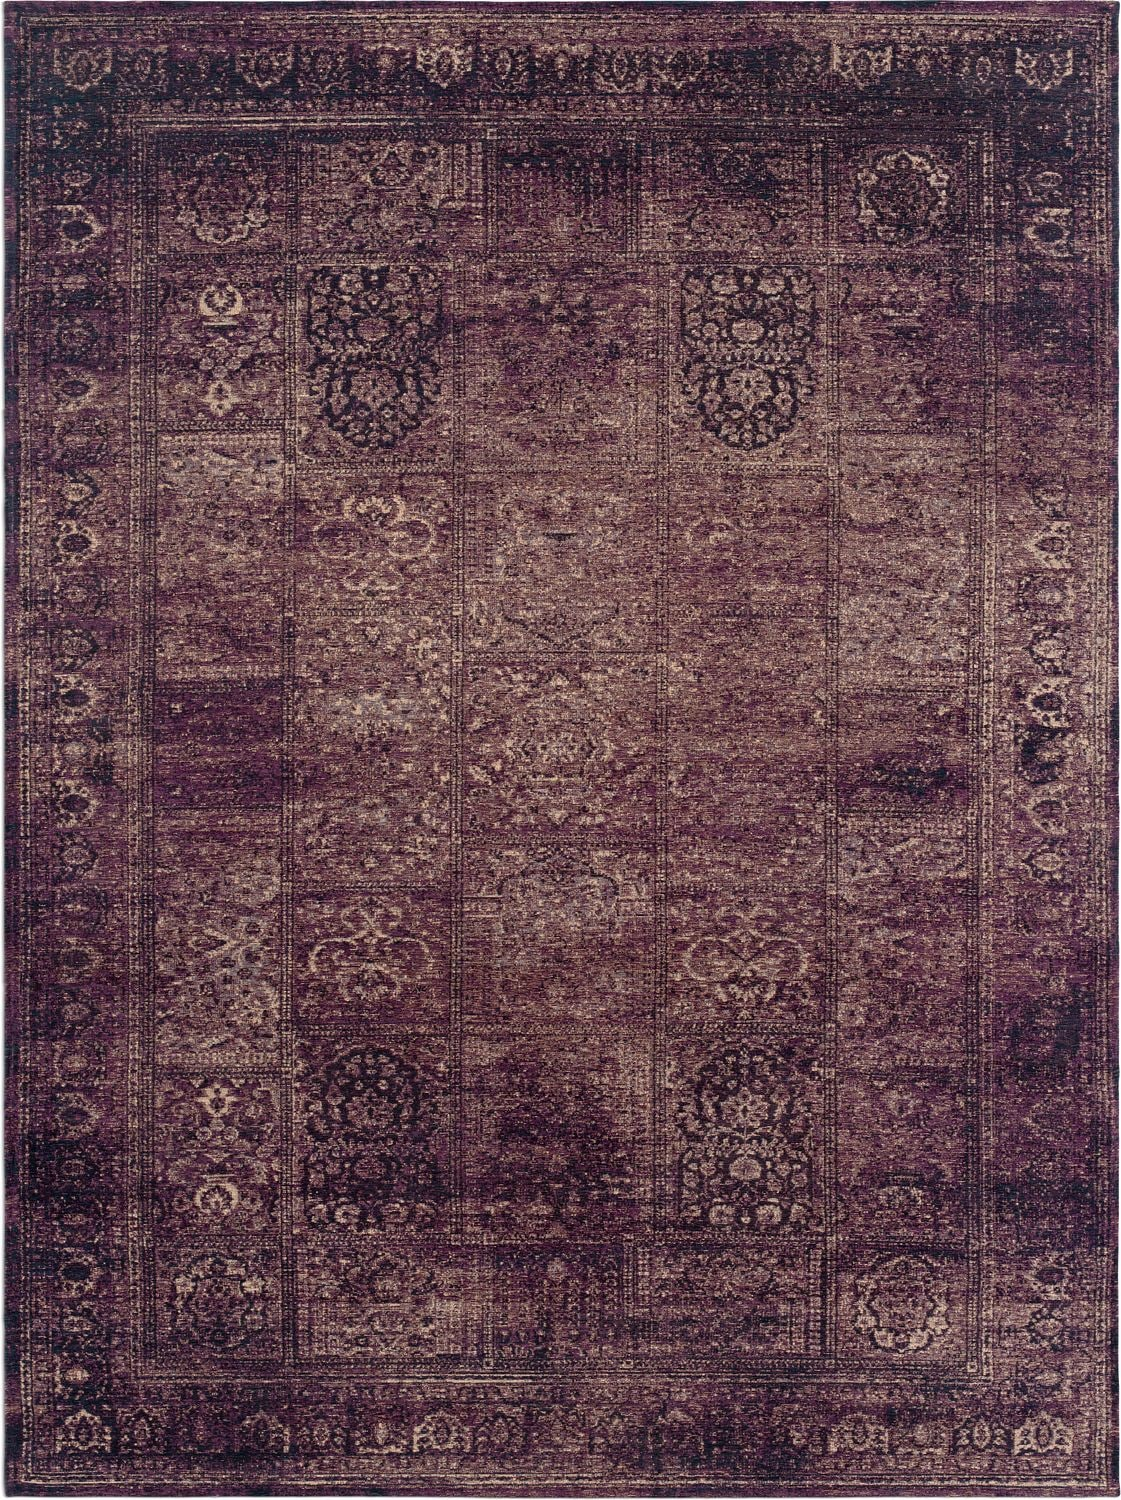 Rugs - Flat Woven Area Rug - Purple